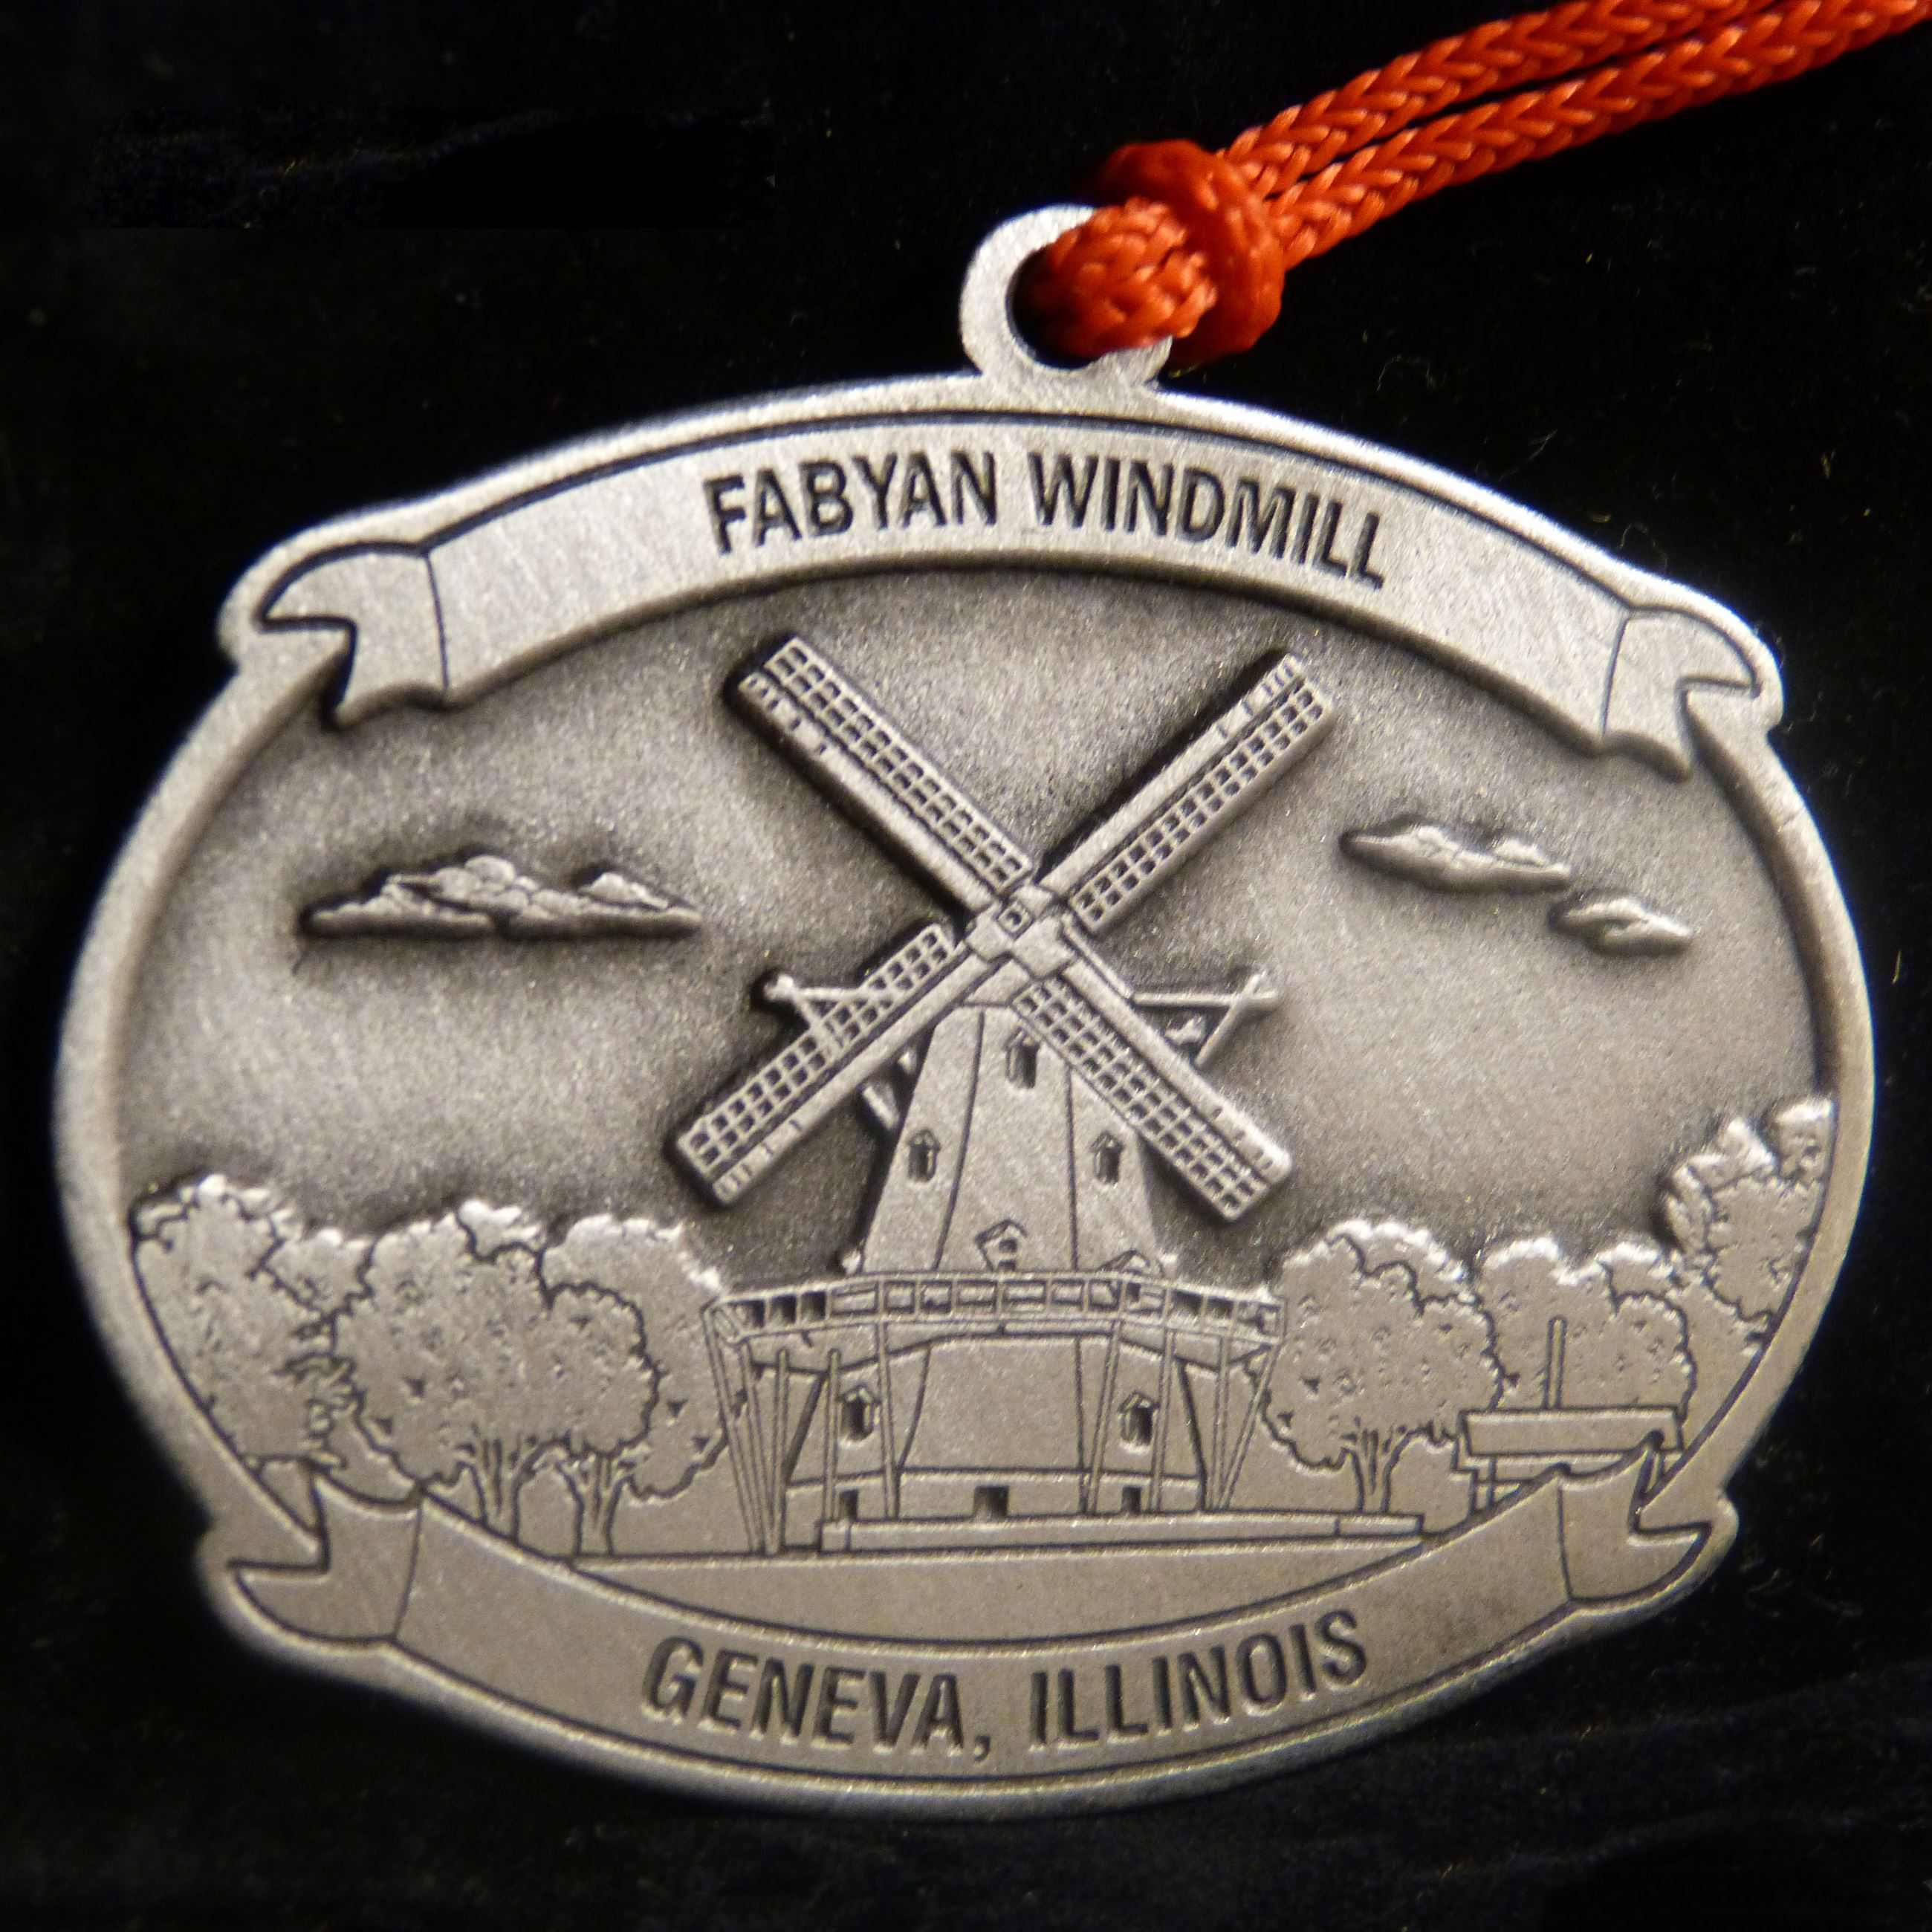 2018 Fabyan Windmill Pewter Ornament